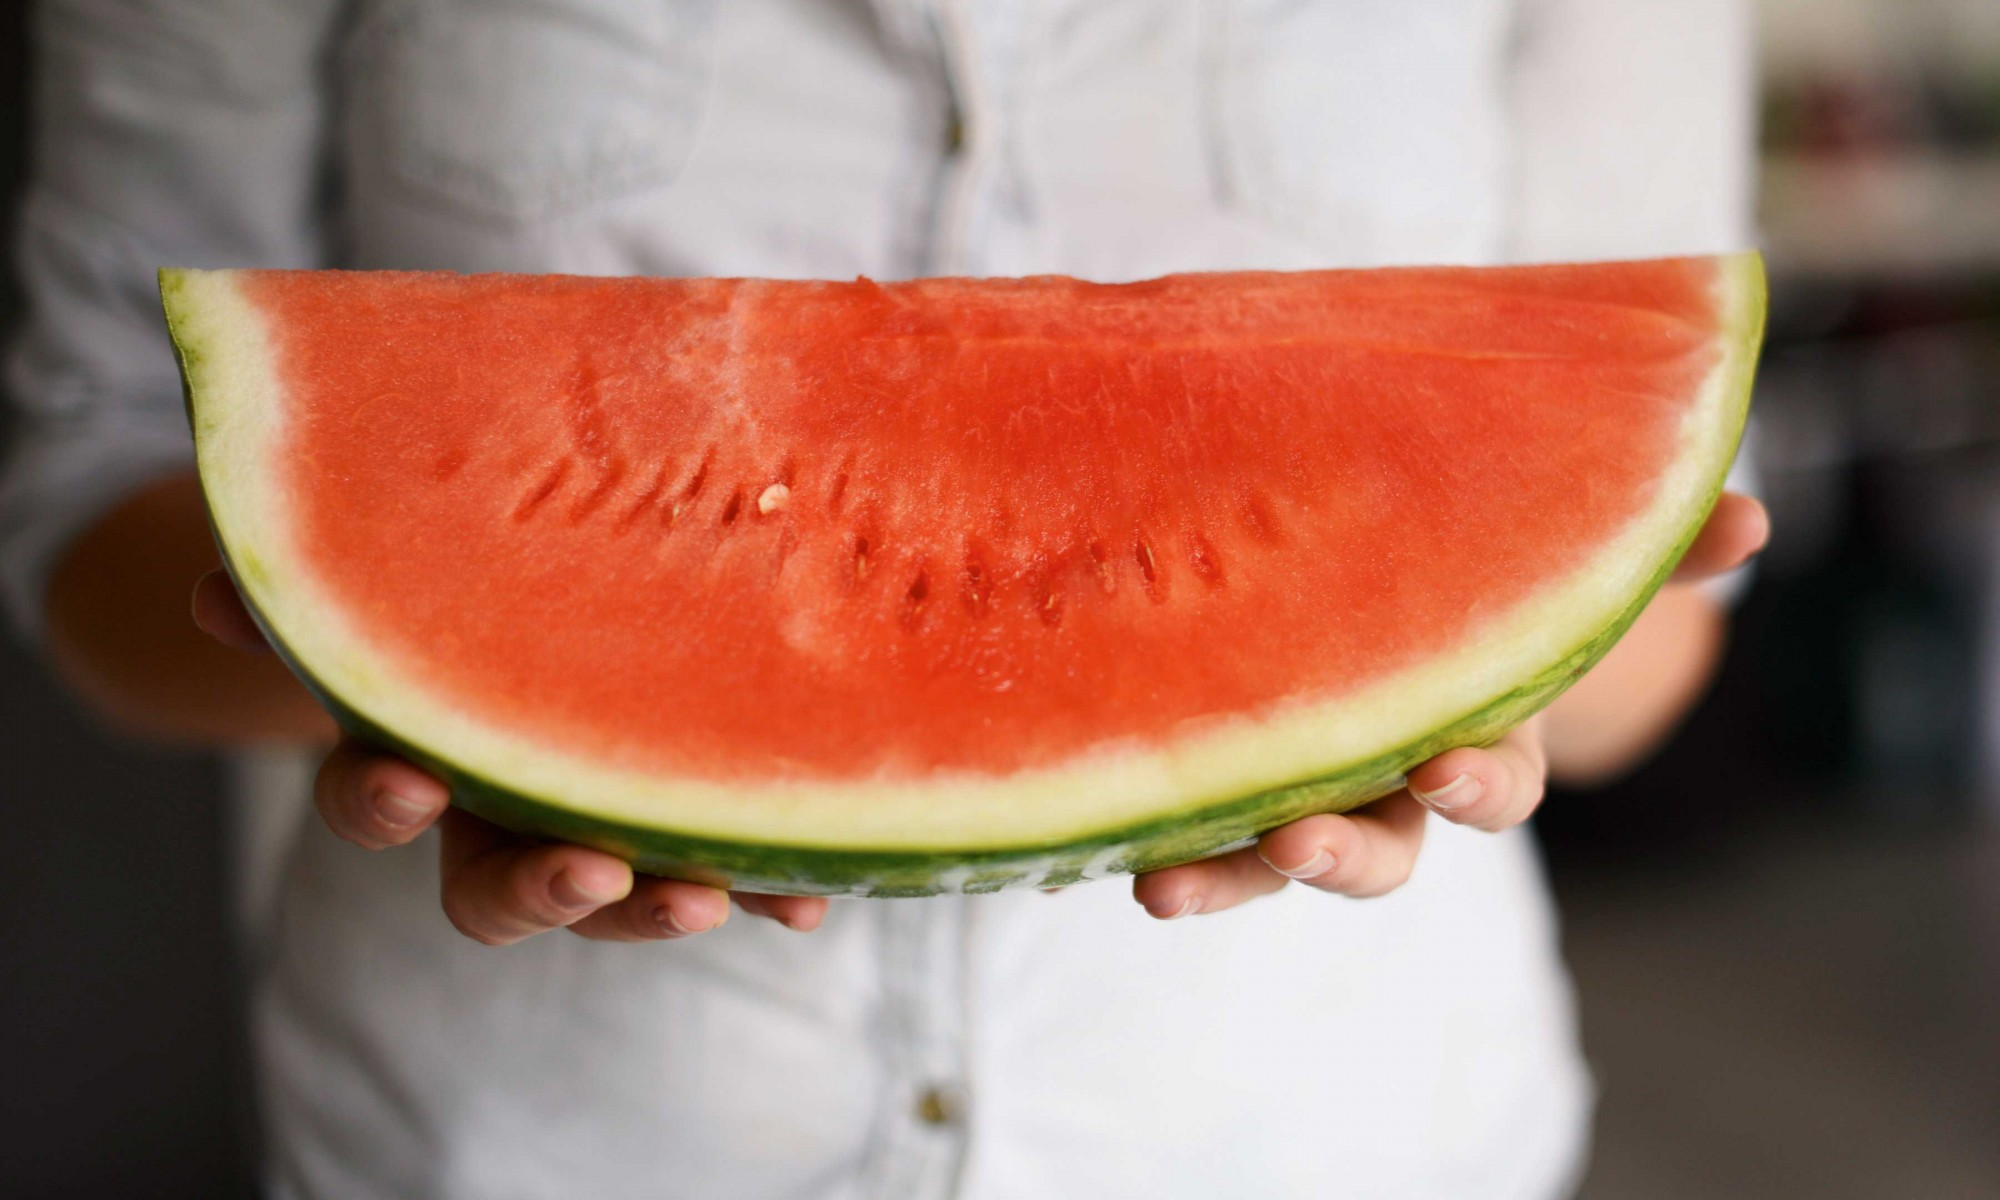 A person holding a big wedge of seedless watermelon